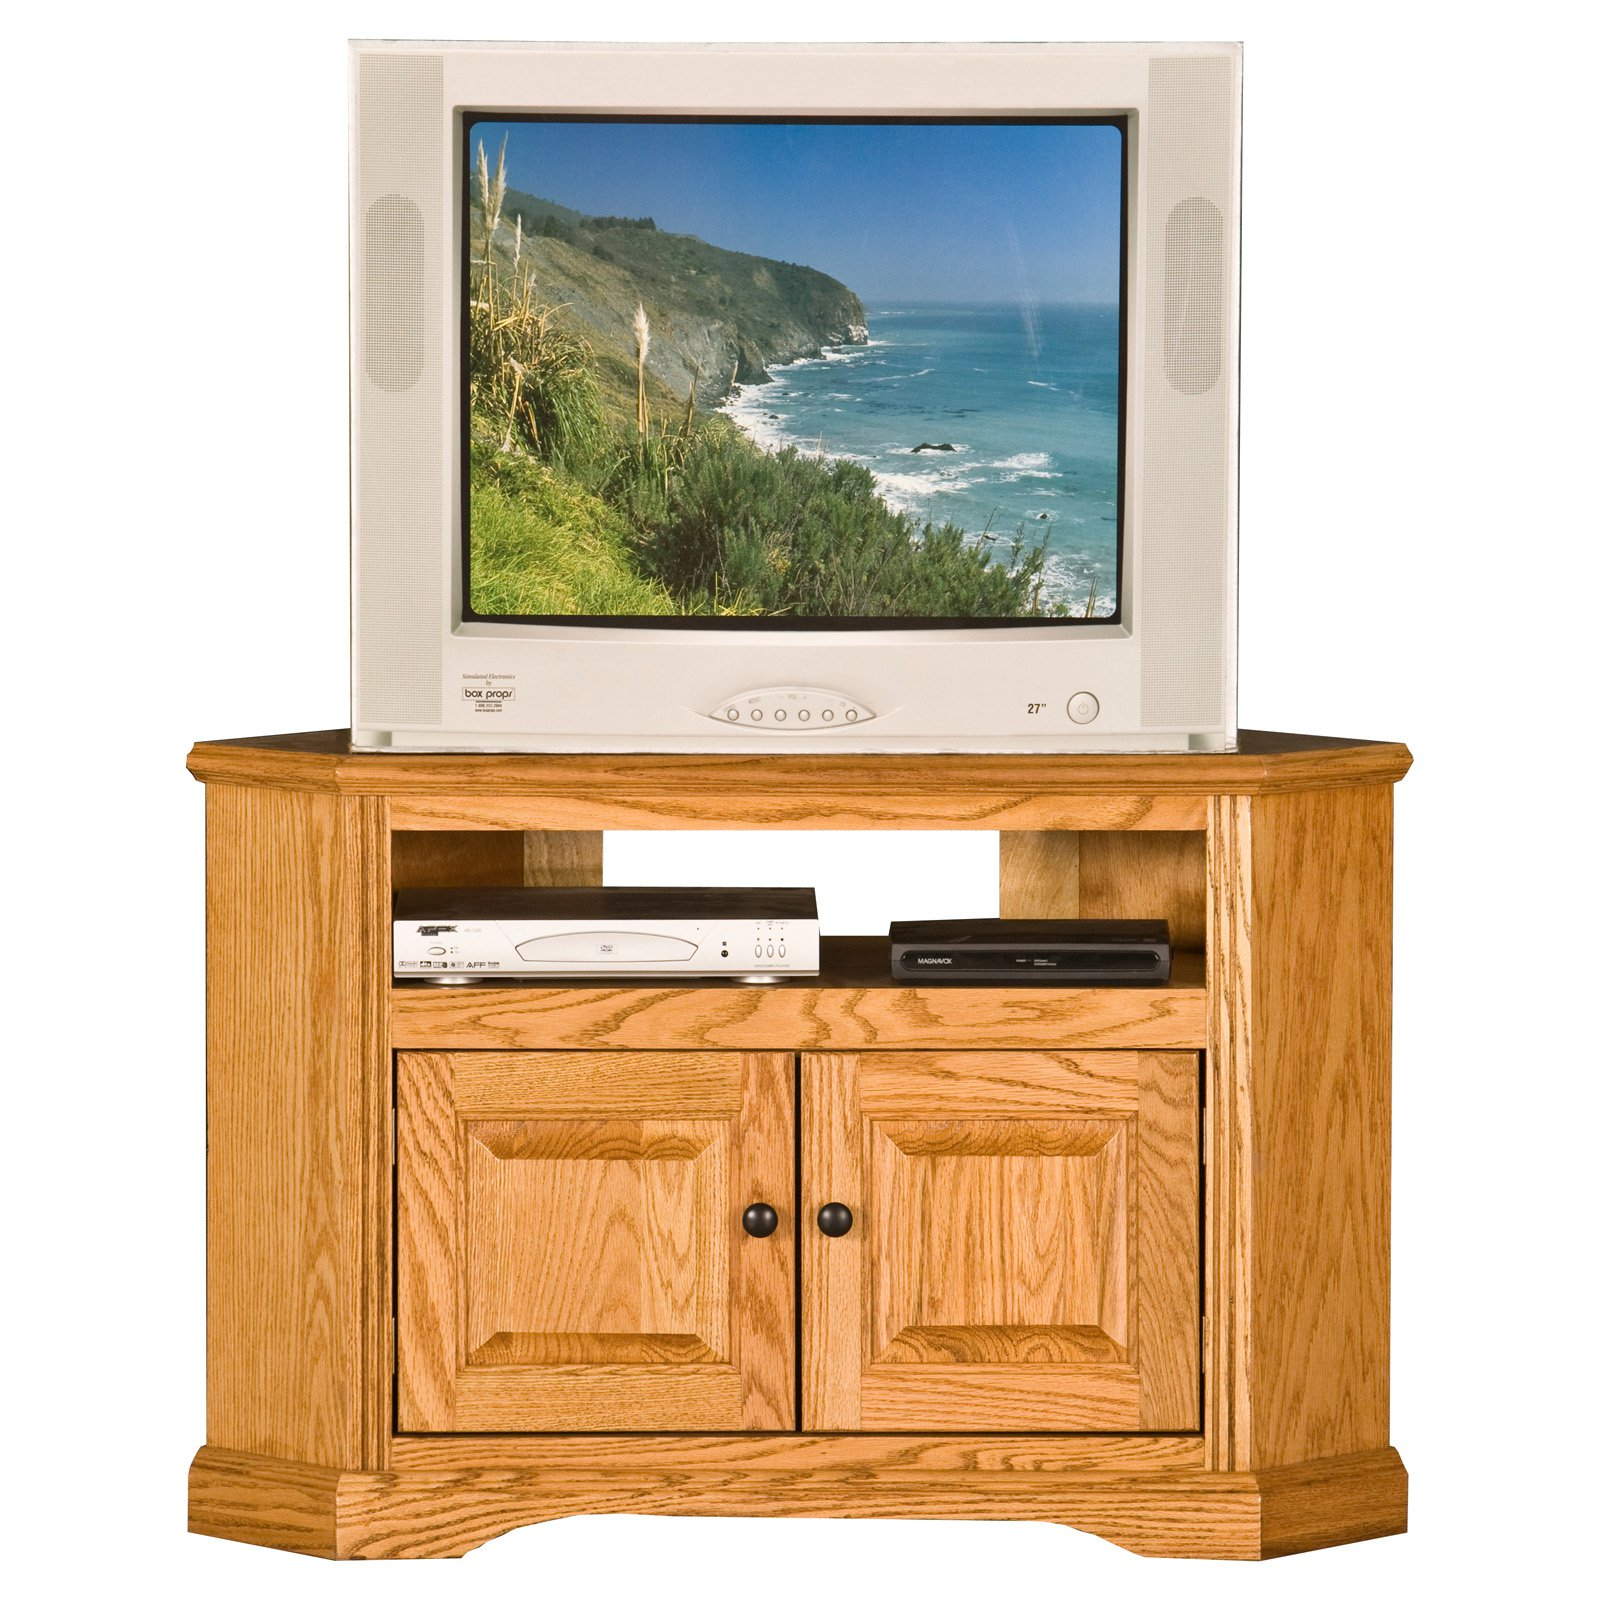 Eagle Furniture Oak Ridge 41 in. Corner TV Stand